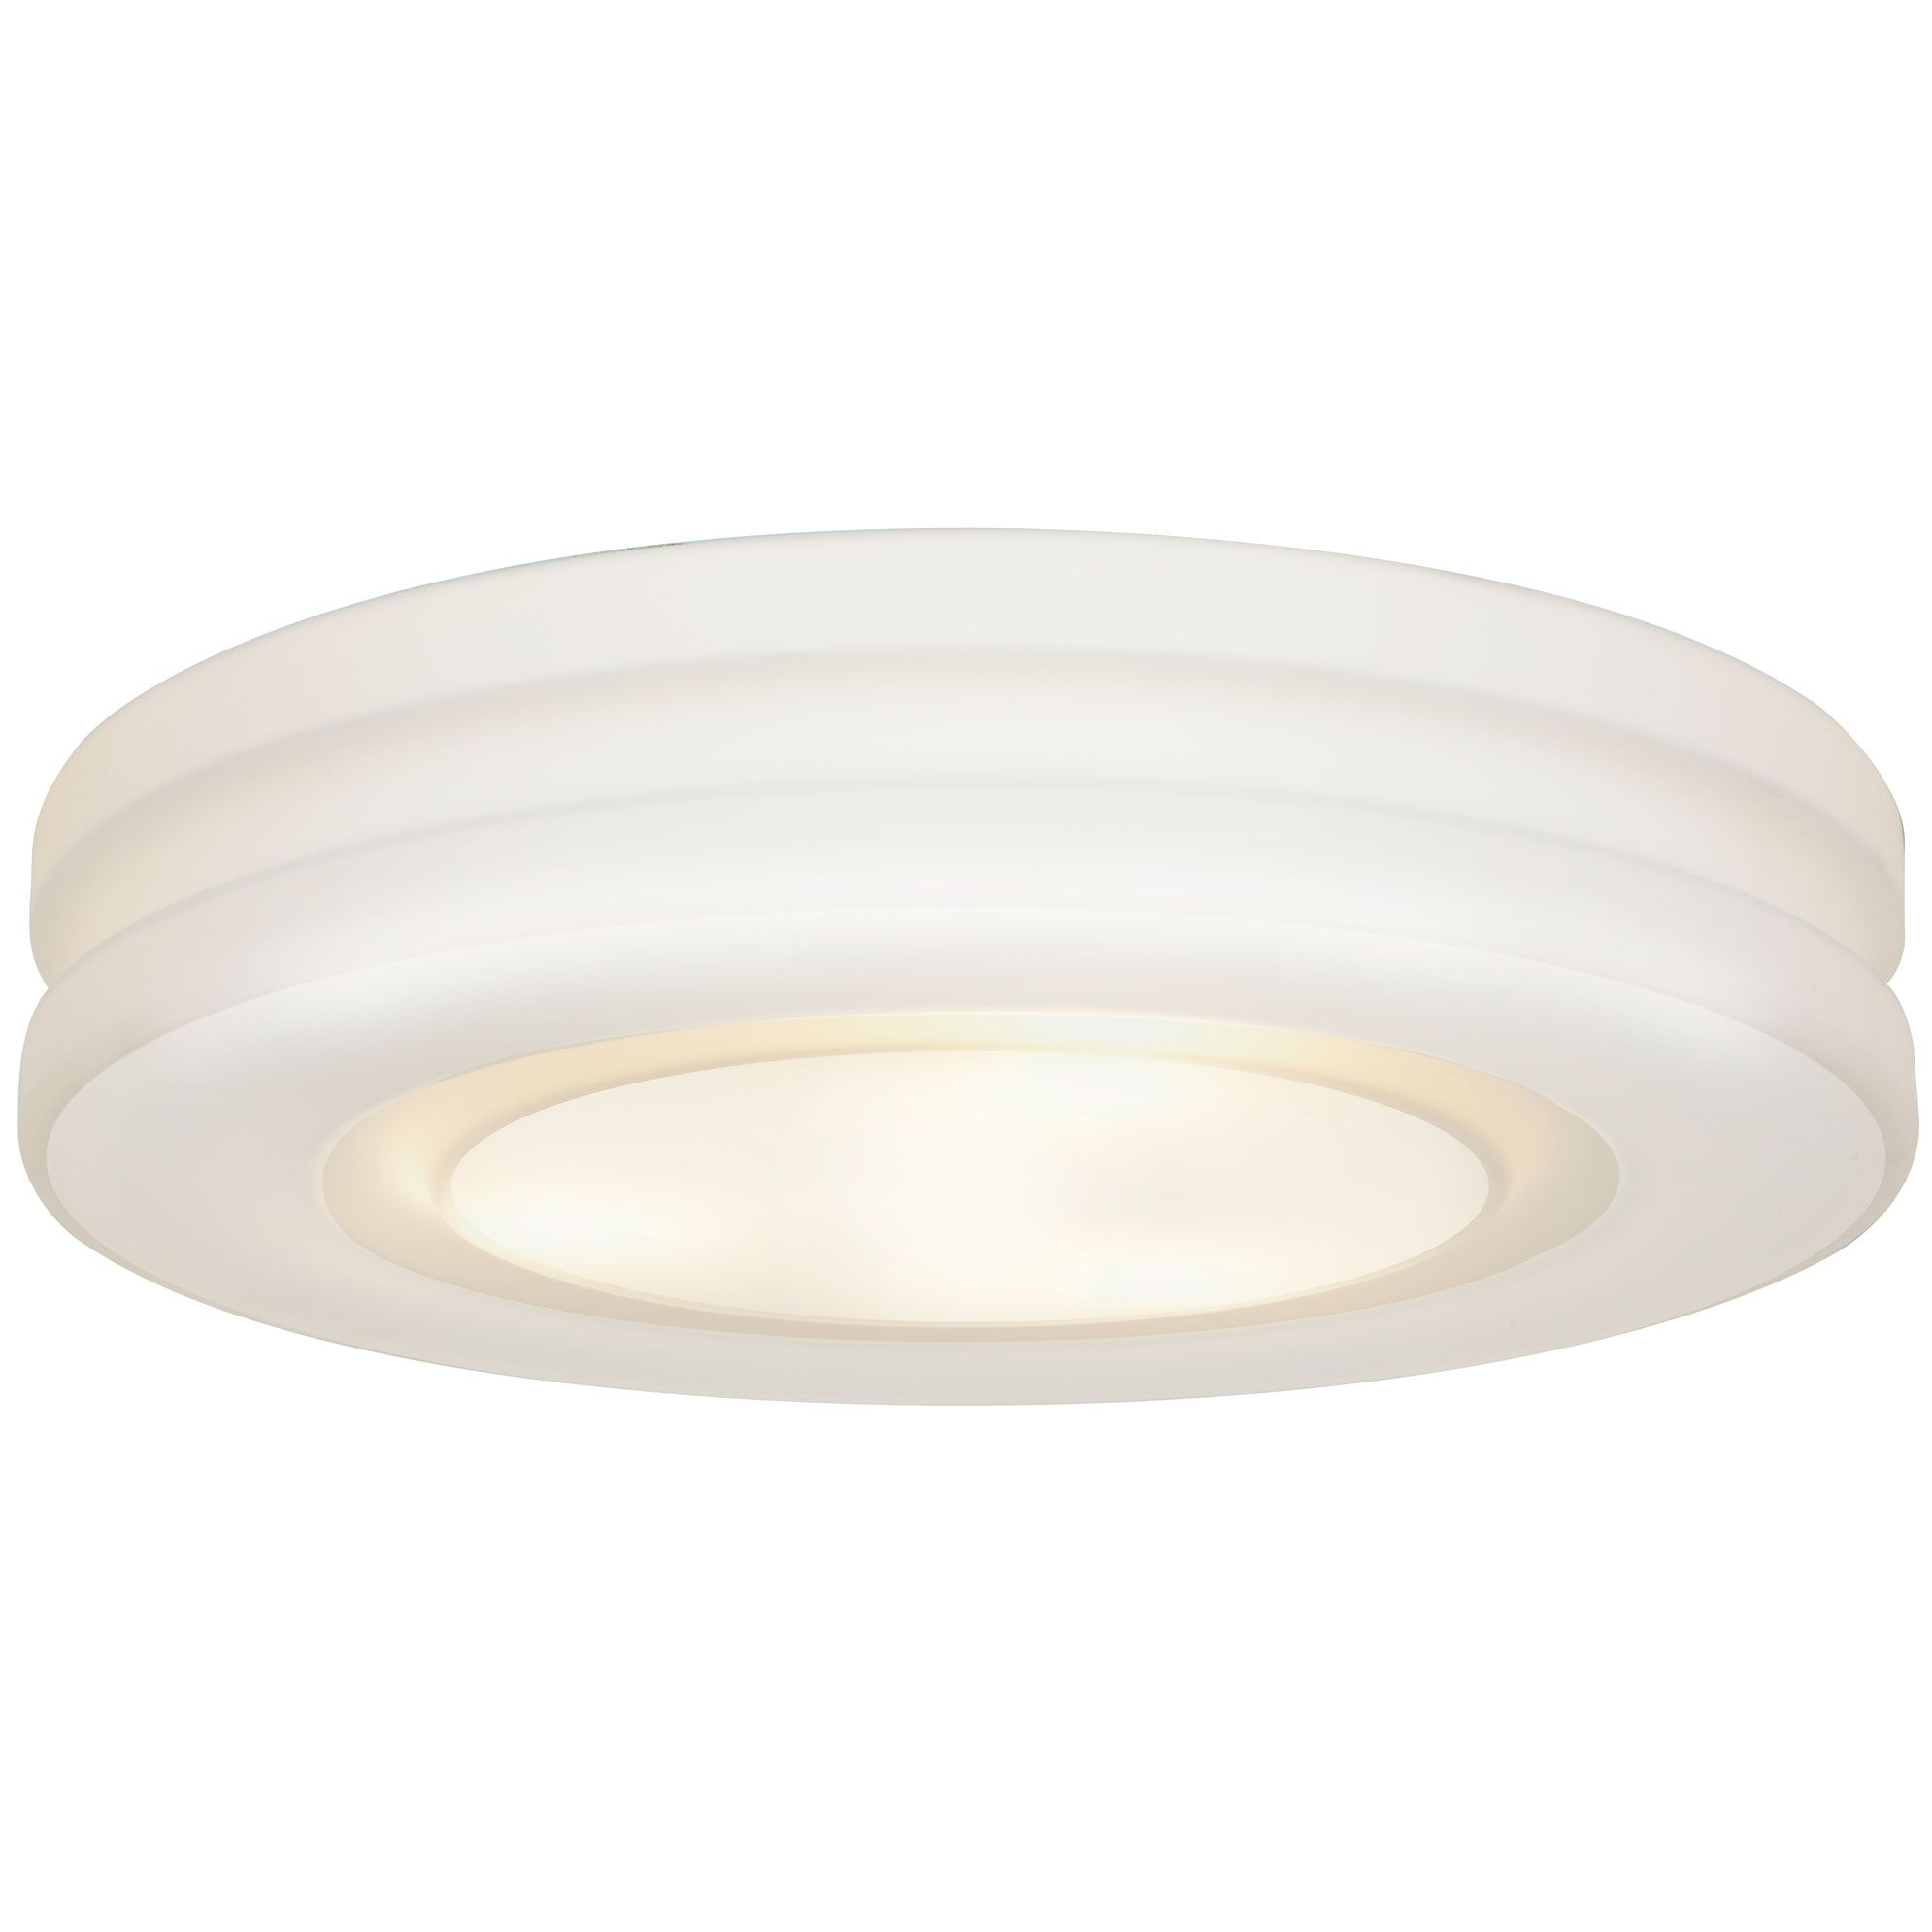 Altum Ceiling Flush Mount Features An Opal Glass Diffuser With A White Finish Two Lampin Access Lighting Flush Mount Lighting Flush Mount Ceiling Lights White